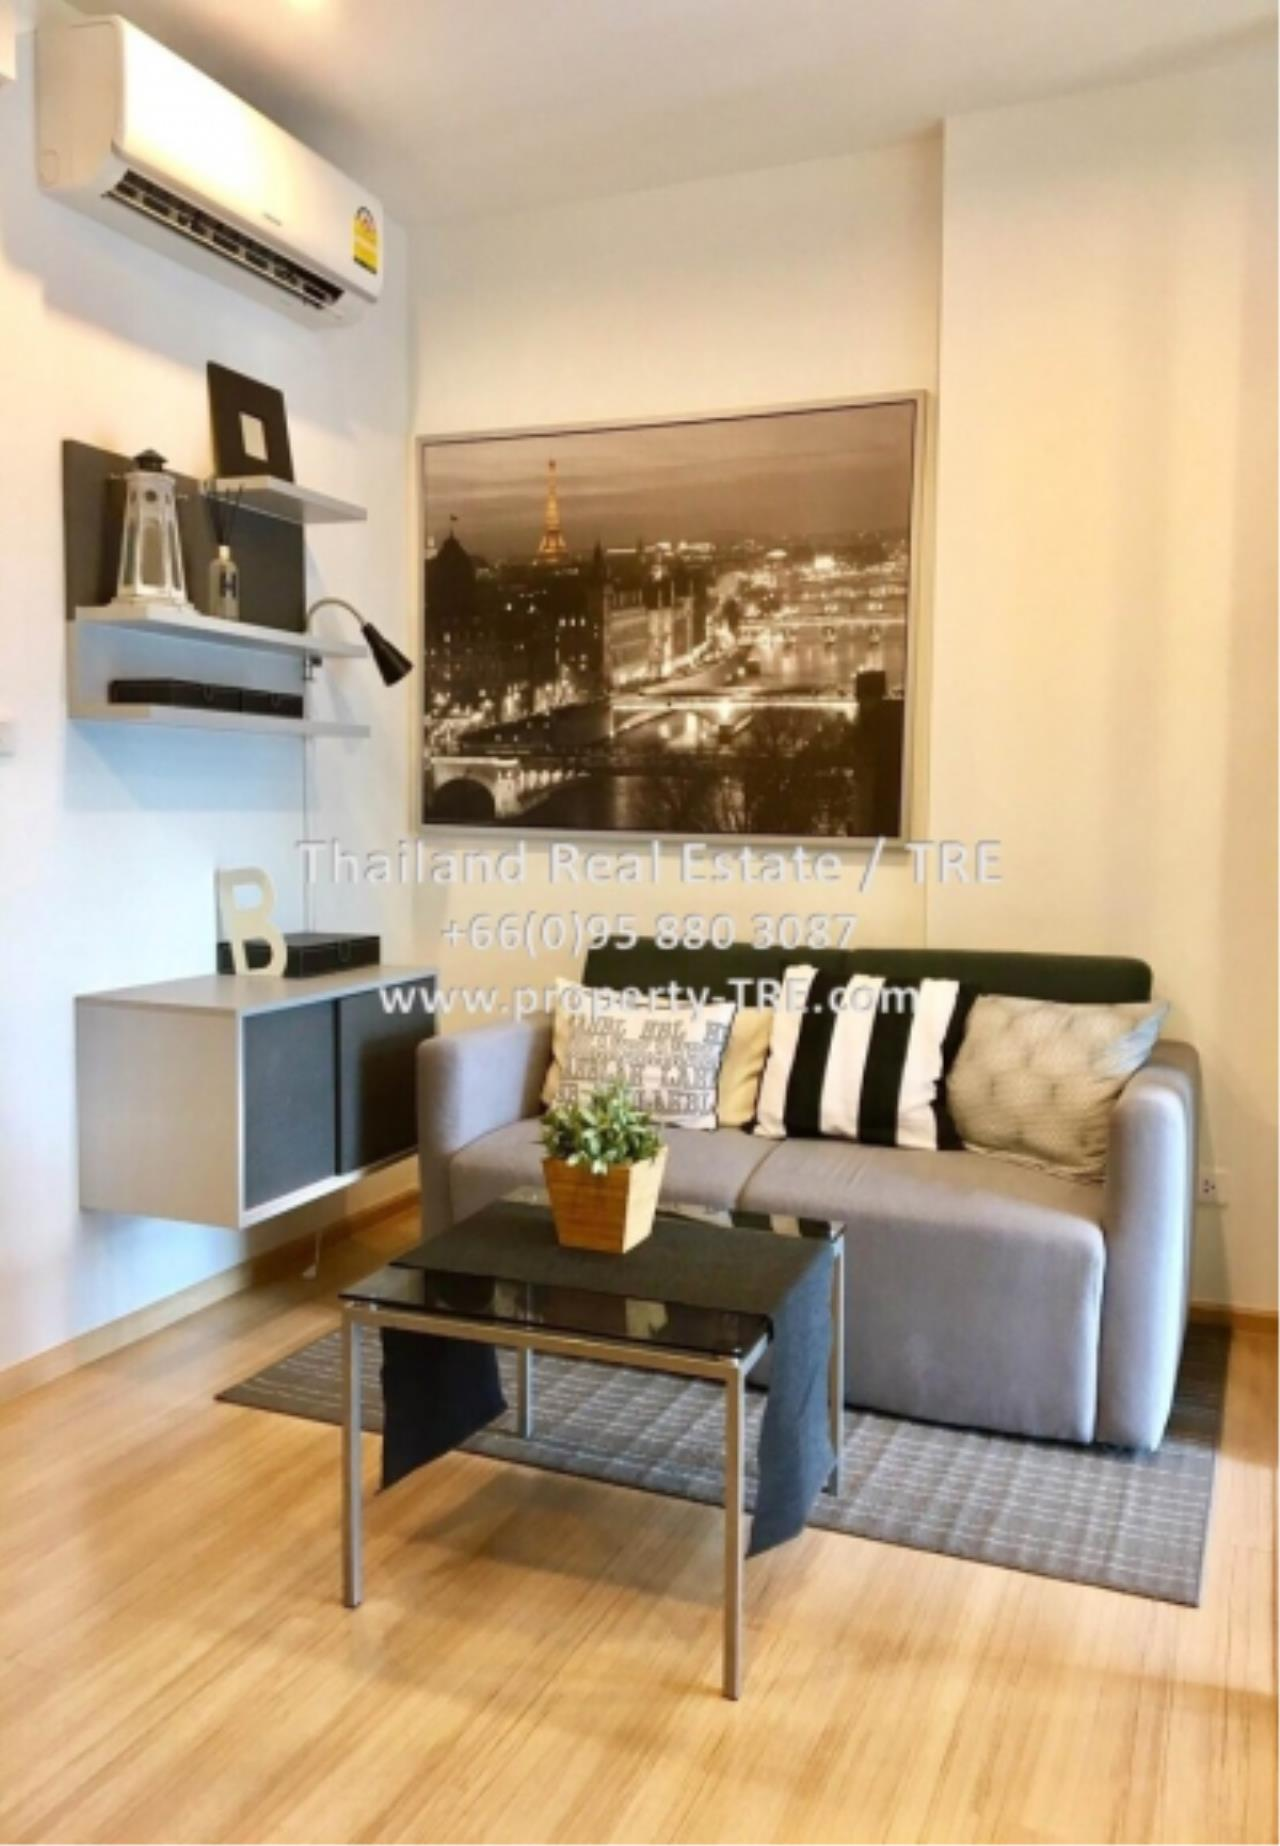 Thailand Real Estate Agency's 1 Bedroom Condo at The Base Rama 9- Ramkhamhaeng(12663) 1